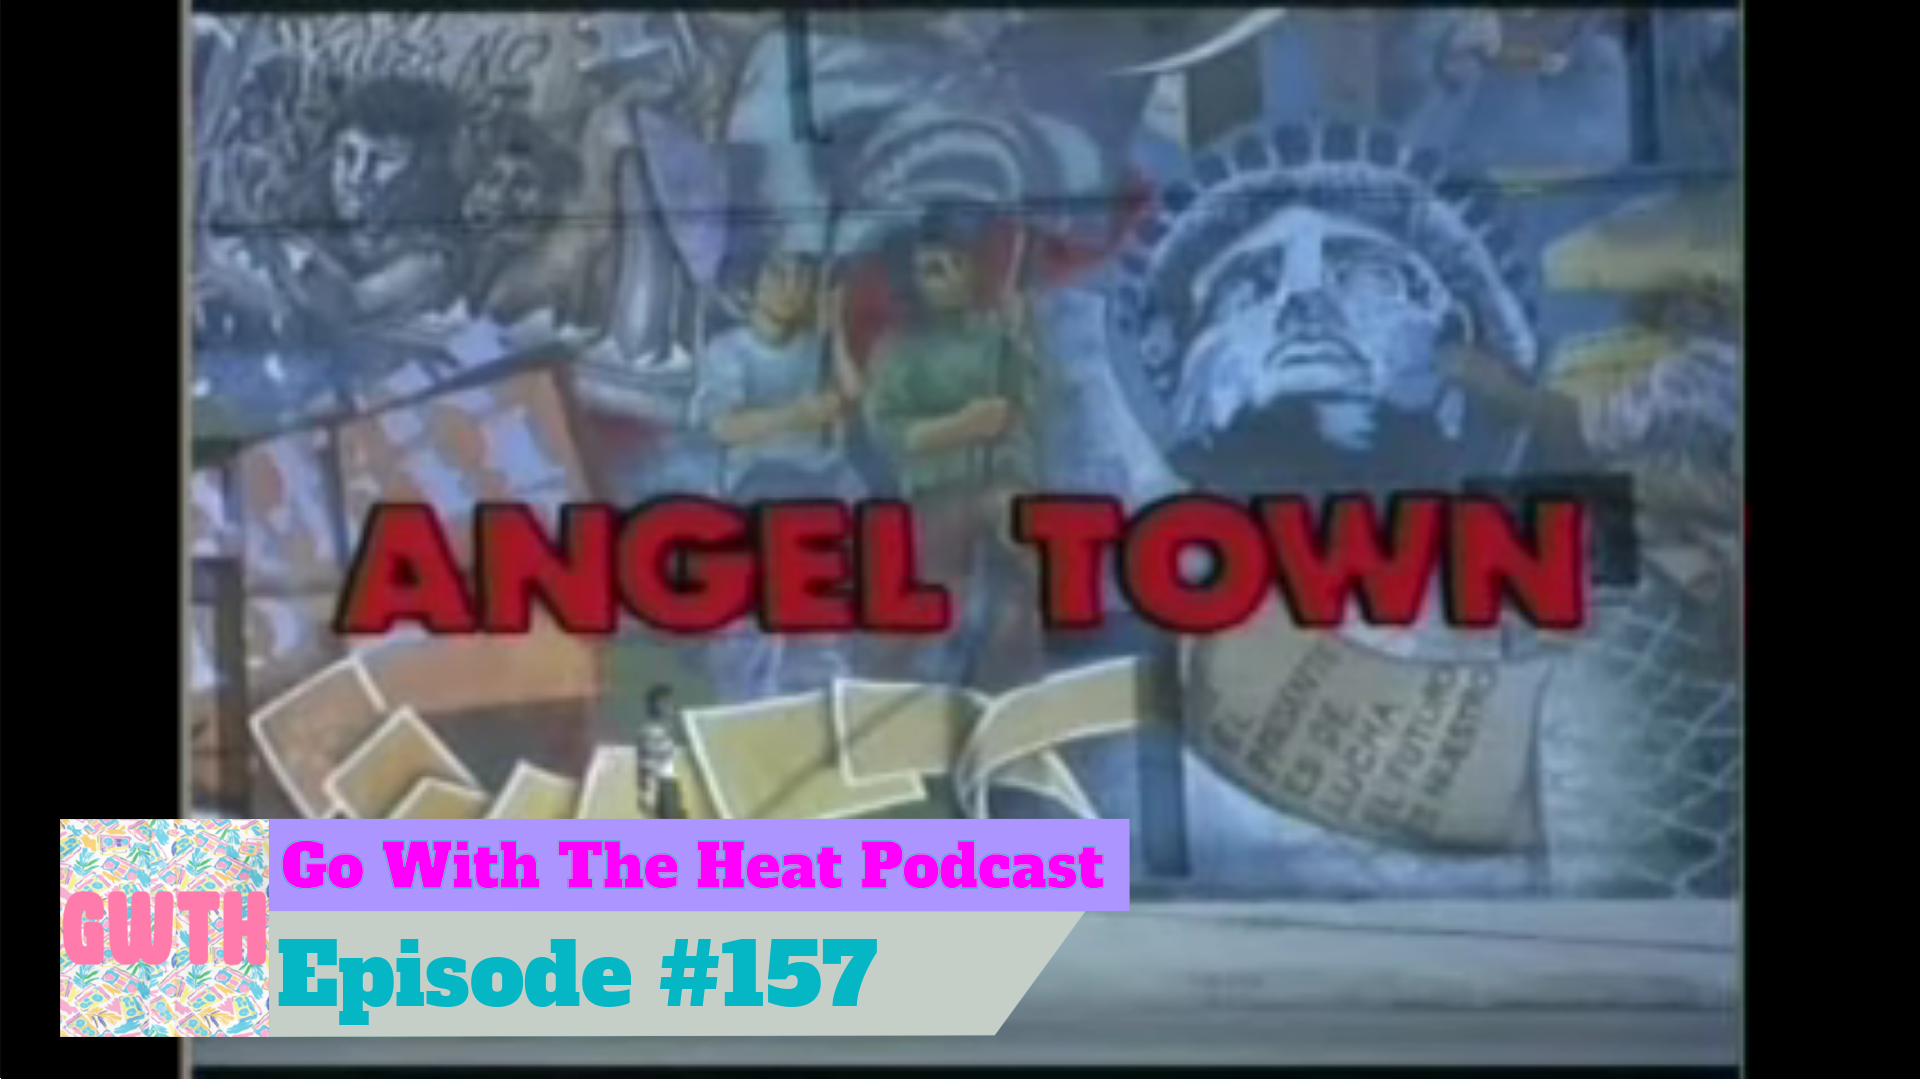 Go With The Heat episode number 157 chyron on bottom of screenshot of the movie Angel Town title card.